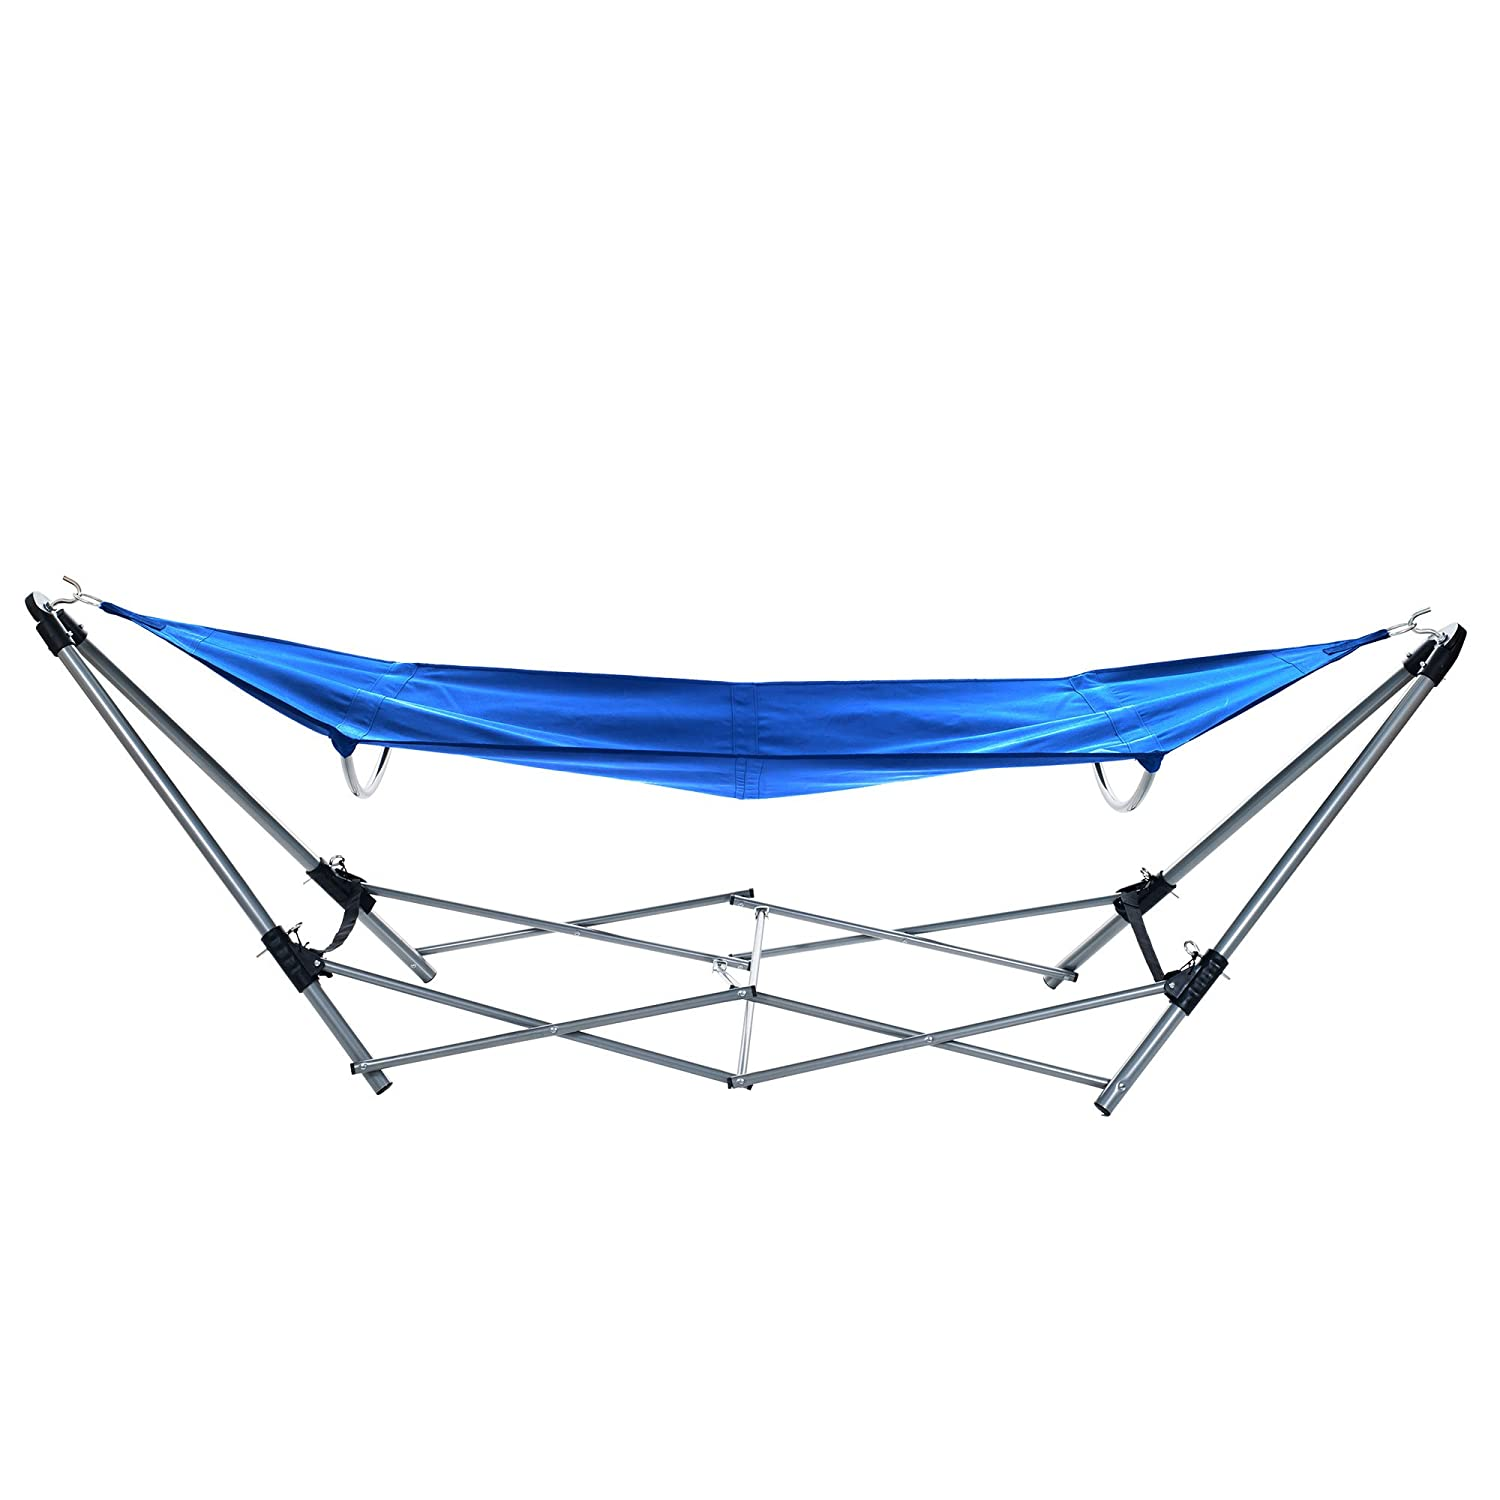 amazon     stalwart portable hammock with frame stand and carrying bag blue   garden  u0026 outdoor amazon     stalwart portable hammock with frame stand and      rh   amazon